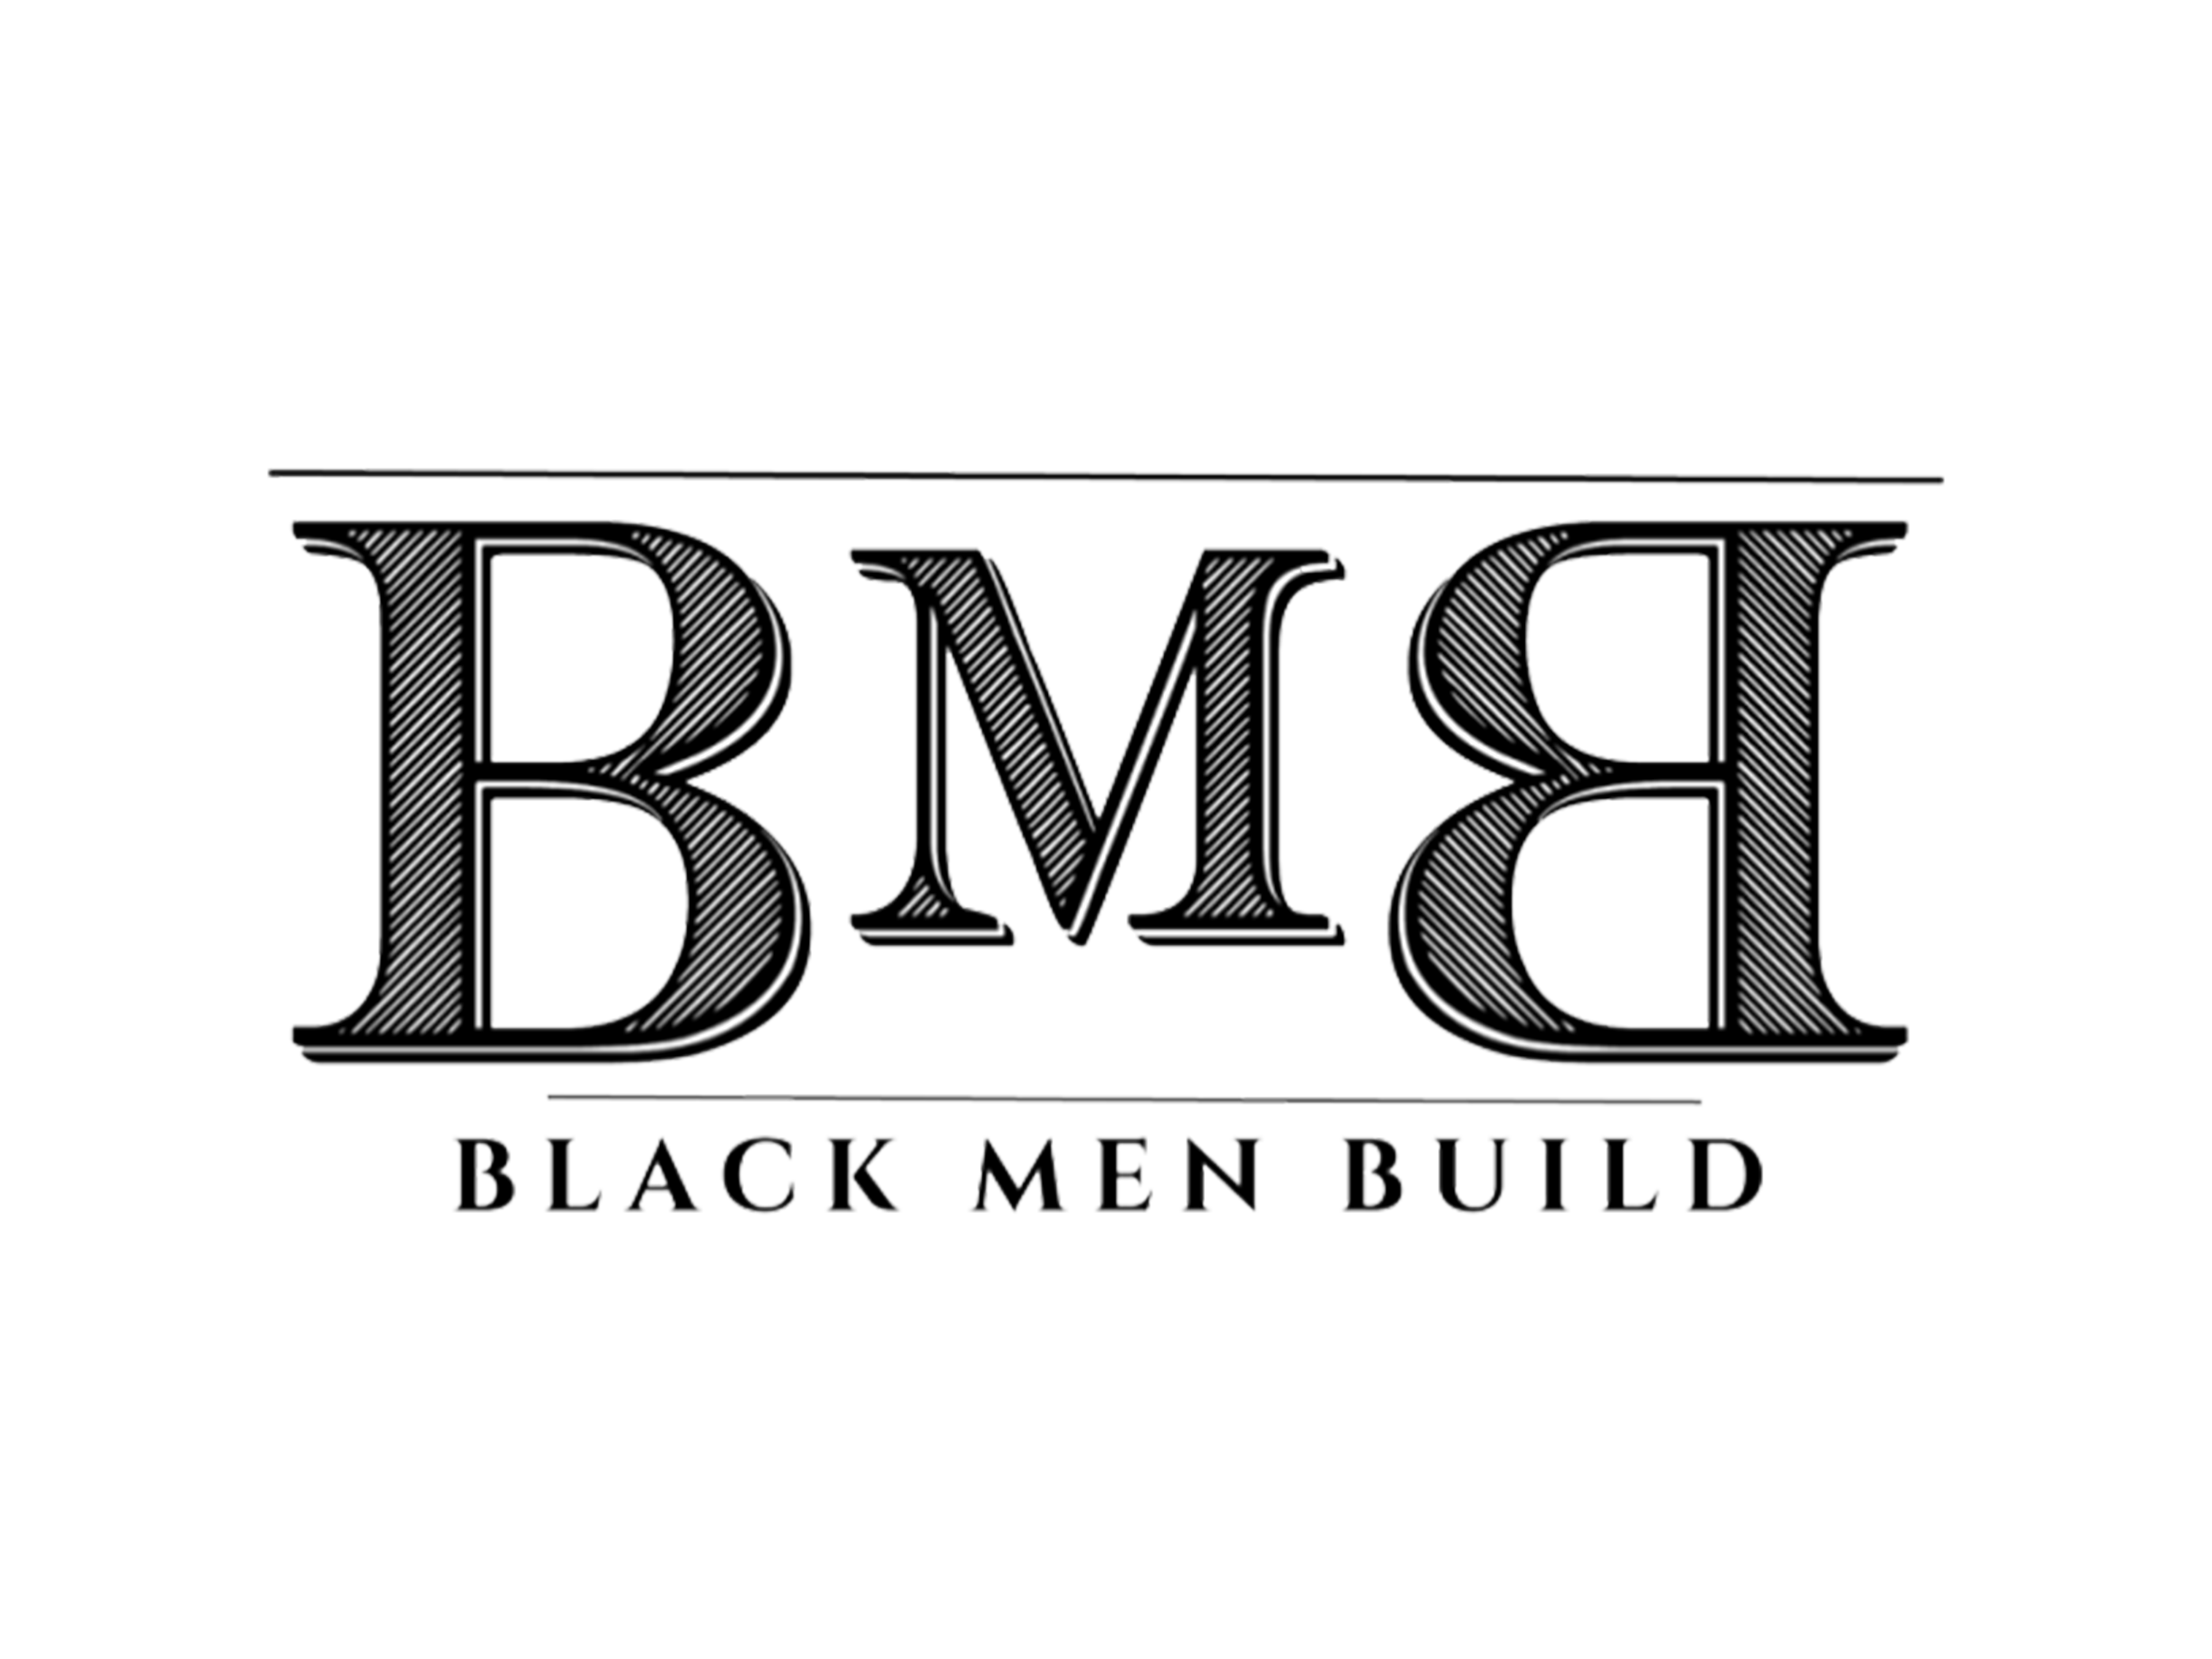 Black Men Build